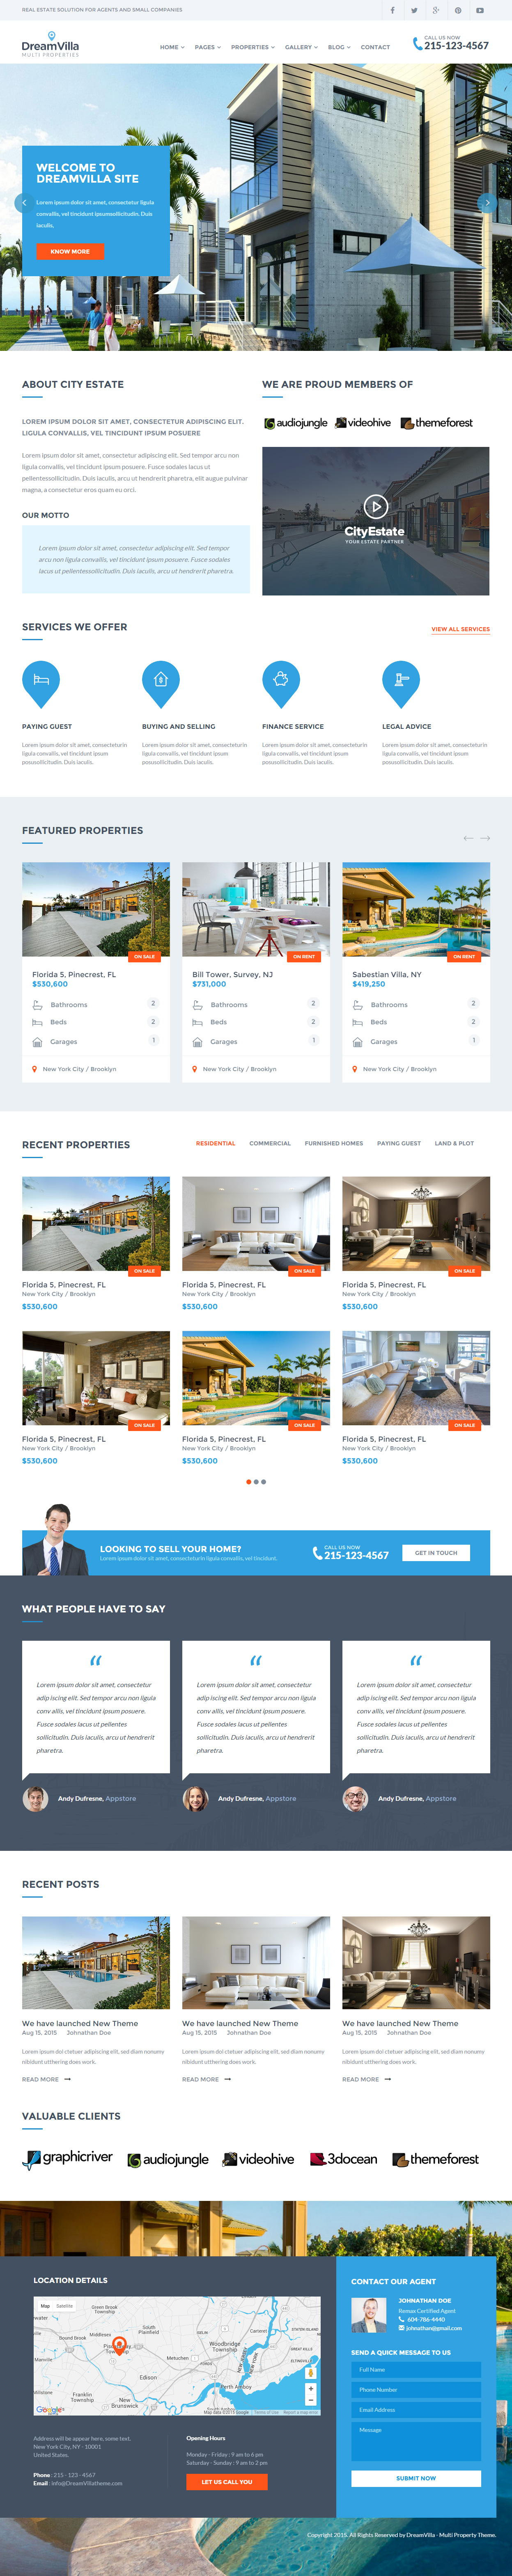 25+ Best Real Estate Website Templates 2017 - Responsive Miracle